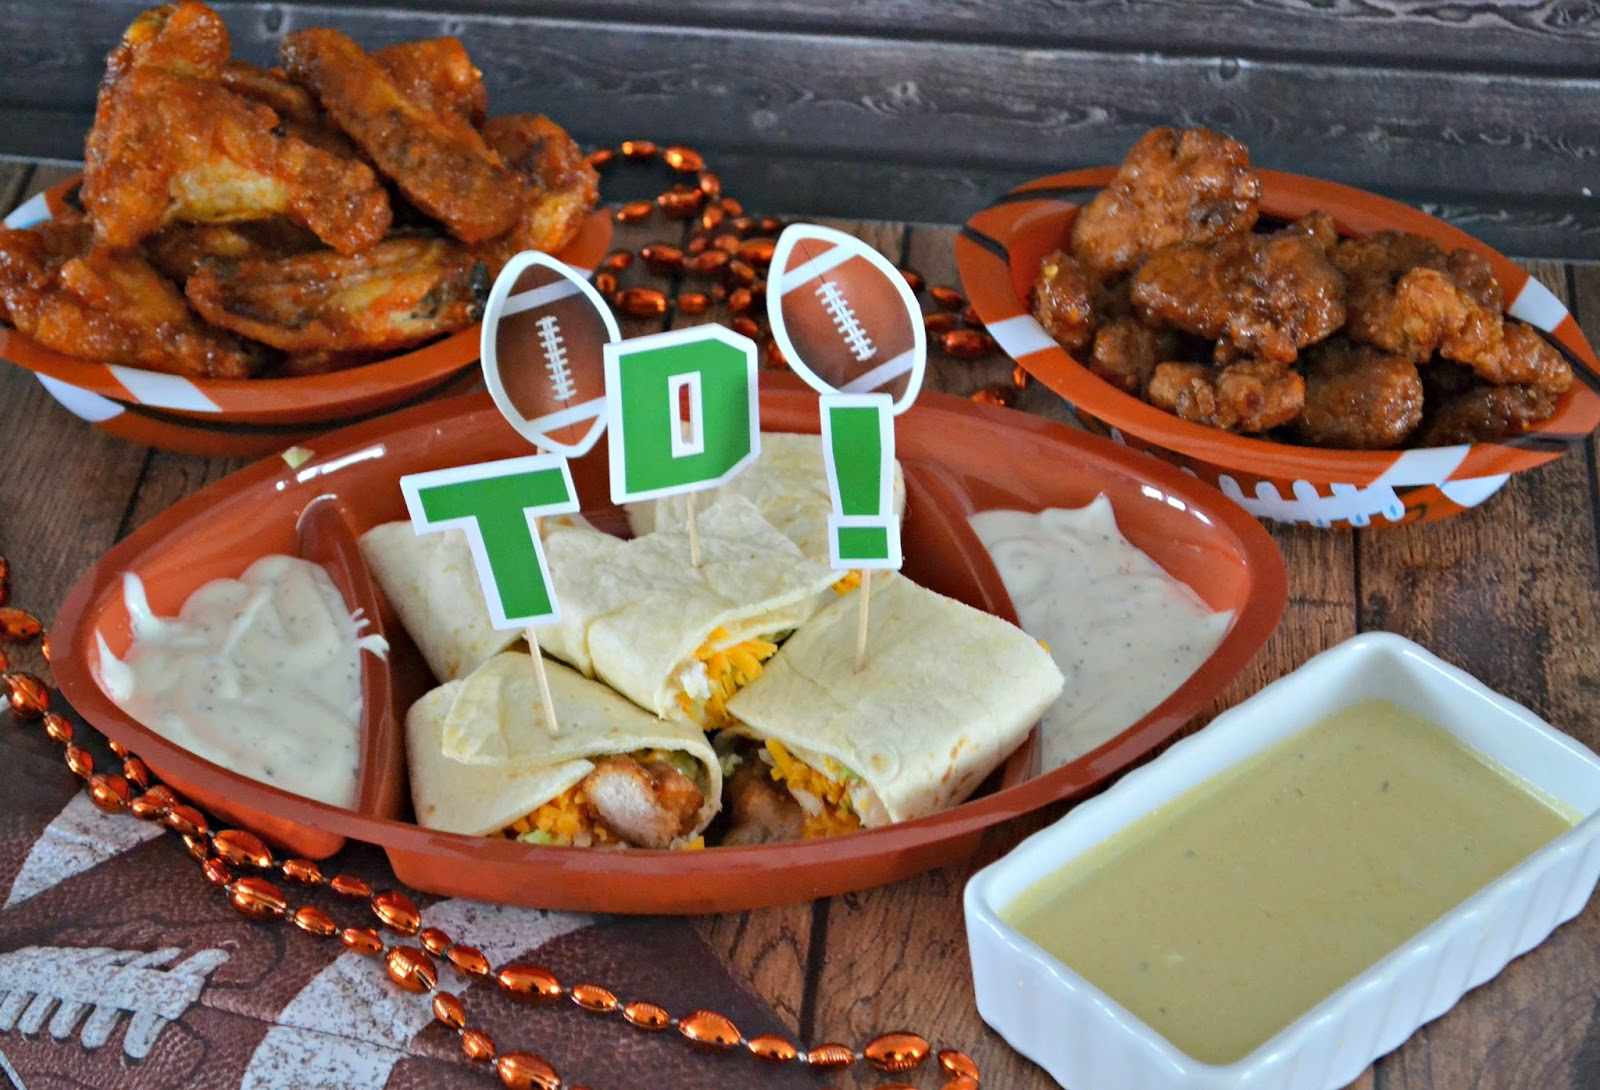 Deli Wings, Prepared Wings, Hot Wings, Fresh Wings, General Tso's Wings, Tarragon Mustard Dipping Sauce.  Dipping Sauce Recipes.  Hot Wing Sauce recipe.  General Tso's Ranch Roll-Up recipe.  BBQ Chicken Roll-Ups